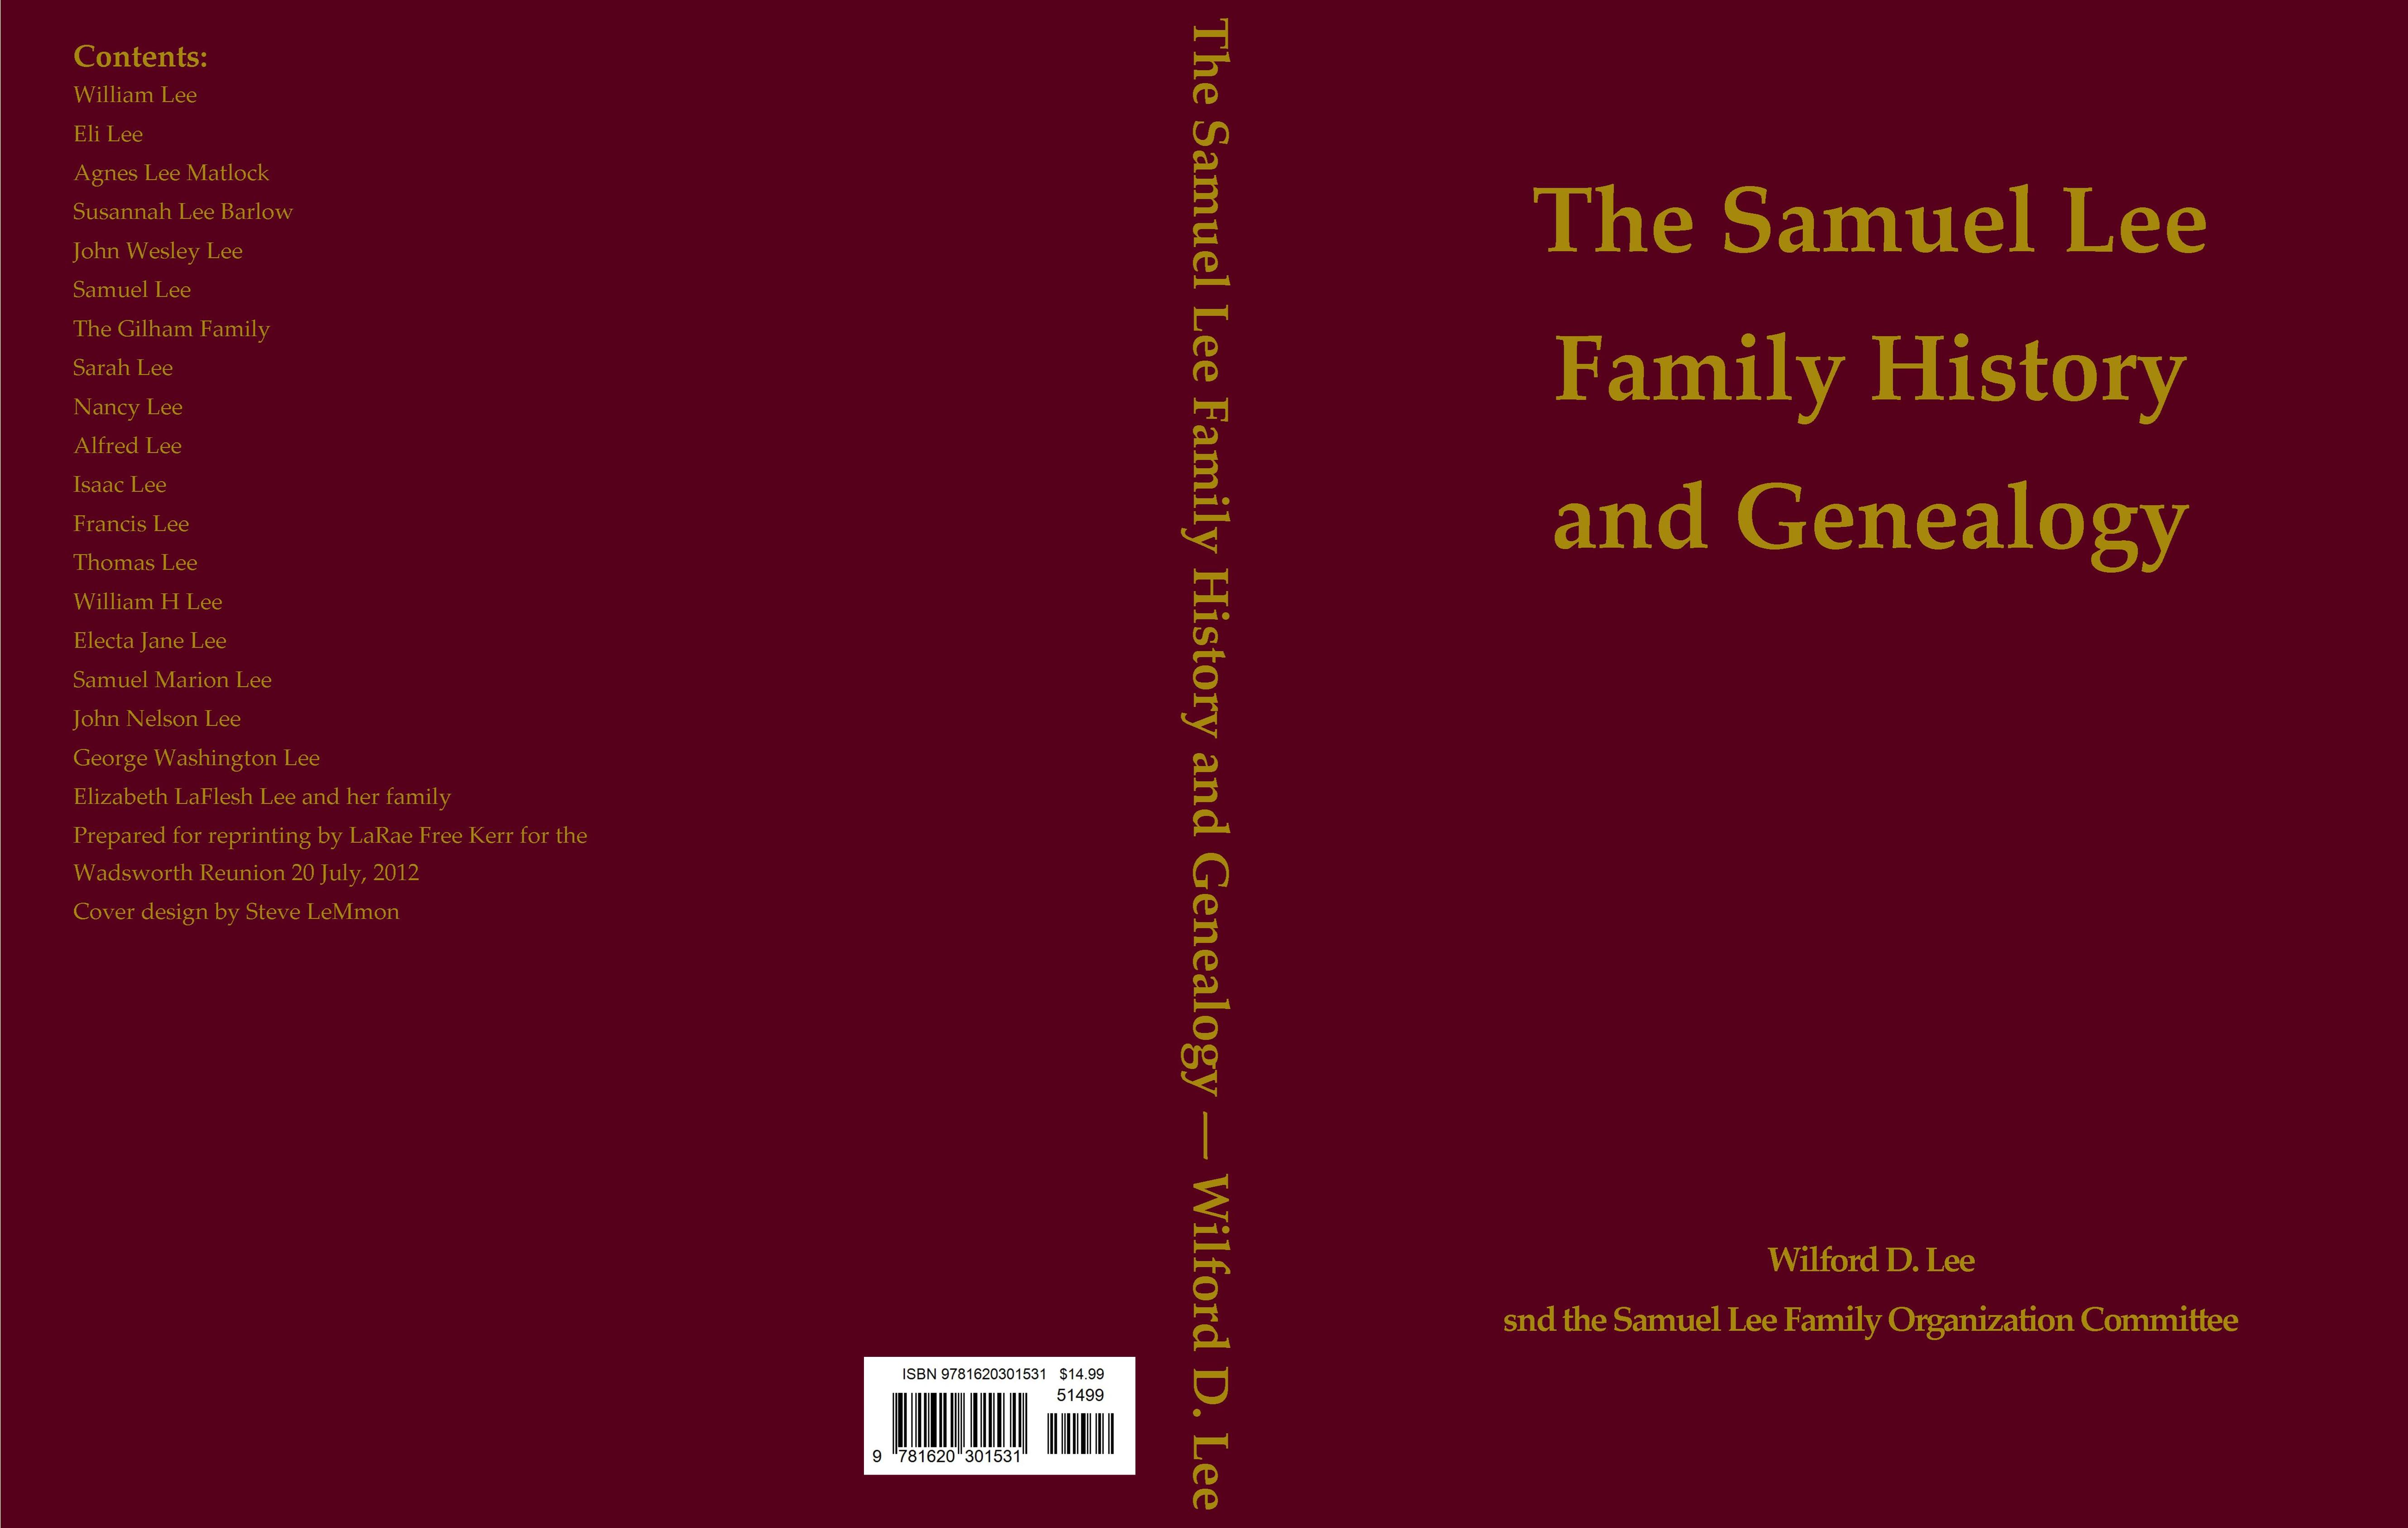 Business Book Cover History : The samuel lee family history and genealogy by larae kerr